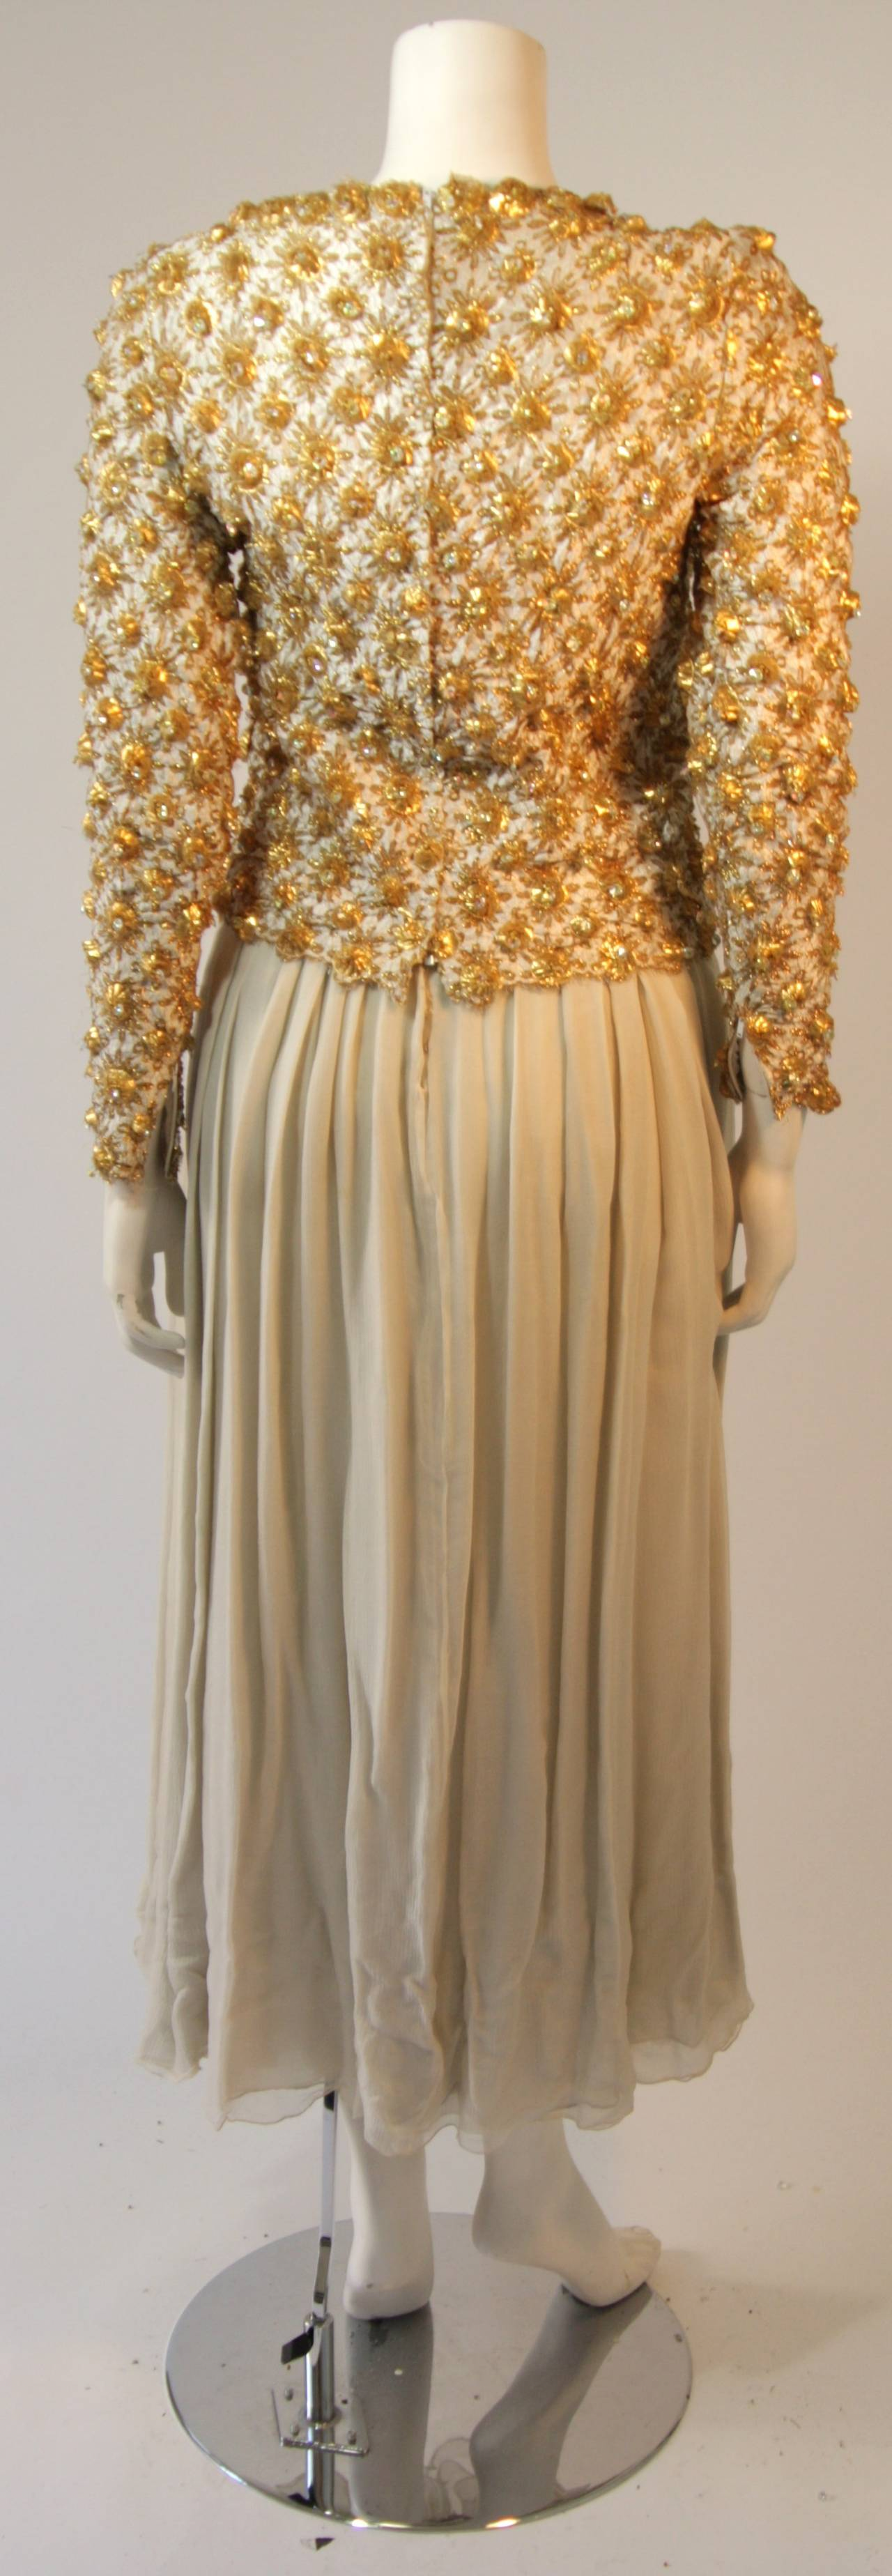 Gold and Chiffon Embellished 2 Piece Gown 6